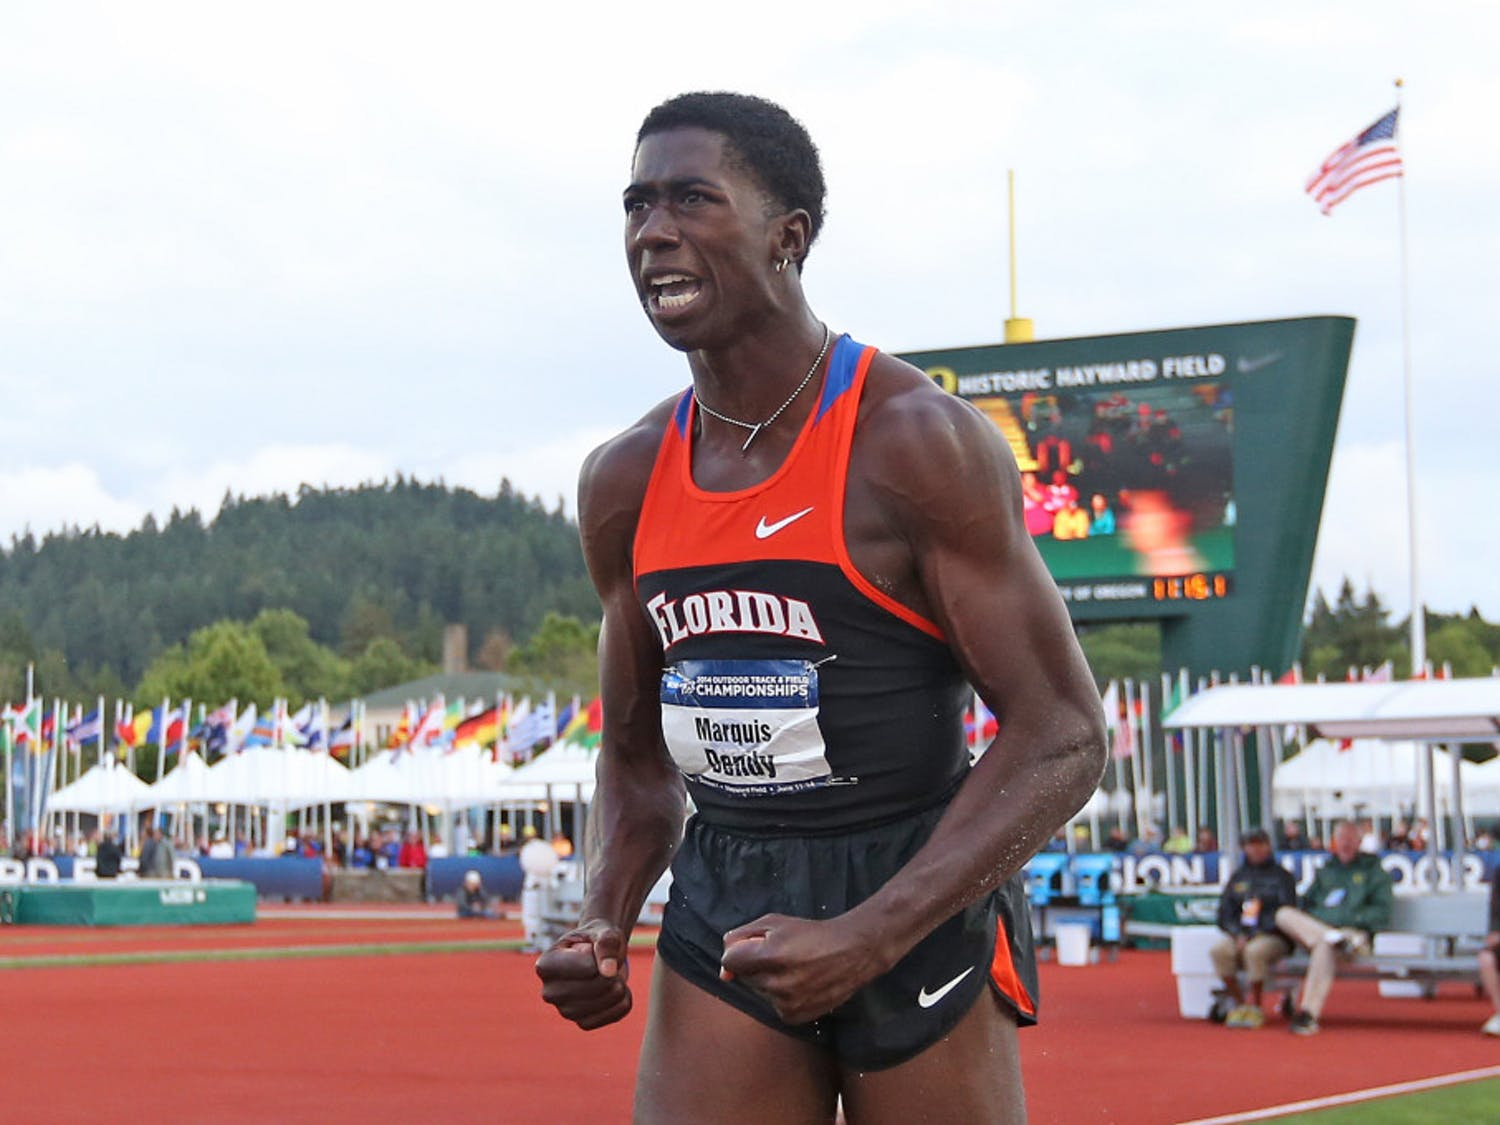 Florida's Marquis Dendy reacts after competing in the long jump at the NCAA track and field championships on June 12 in Eugene, Ore. Dendy became the first athlete to win both the long jump and the triple jump at the NCAA Outdoors since 2002.